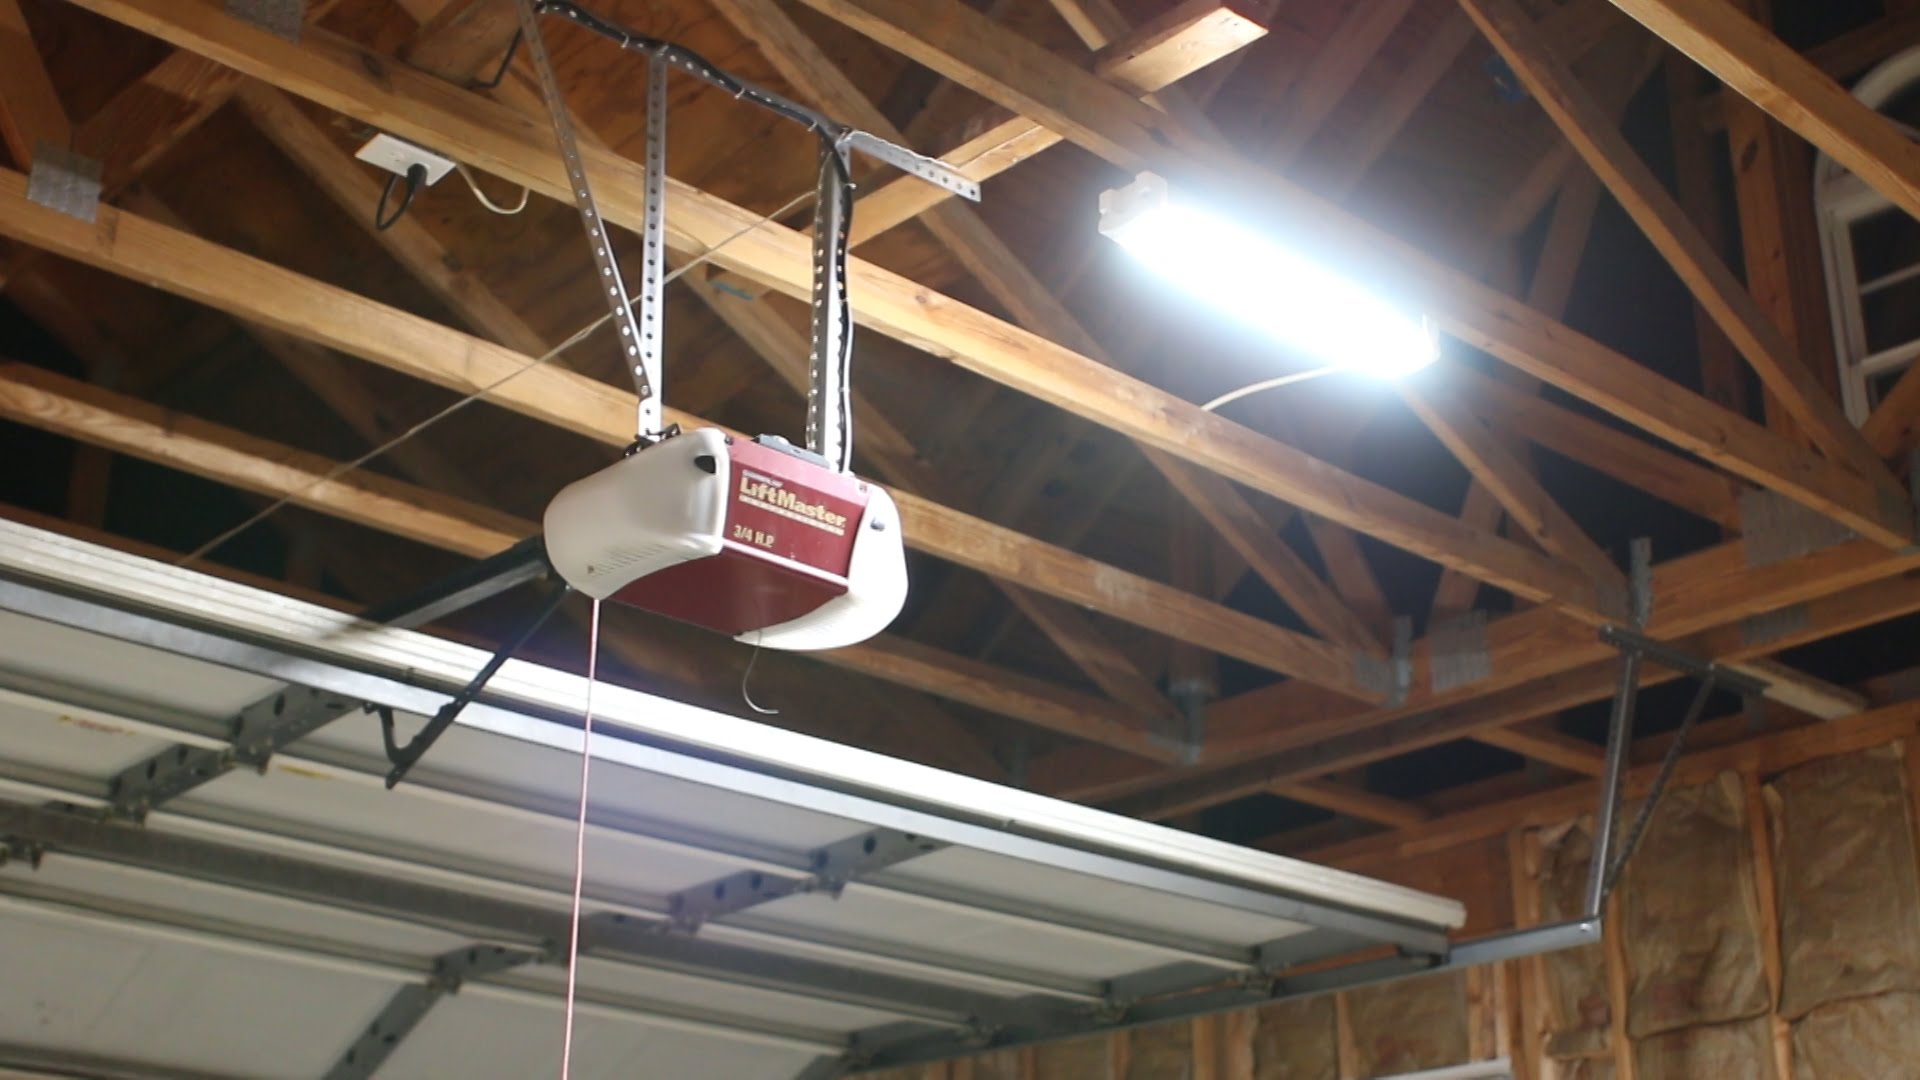 Led Garage Ceiling Lights An Energy Efficient Way To